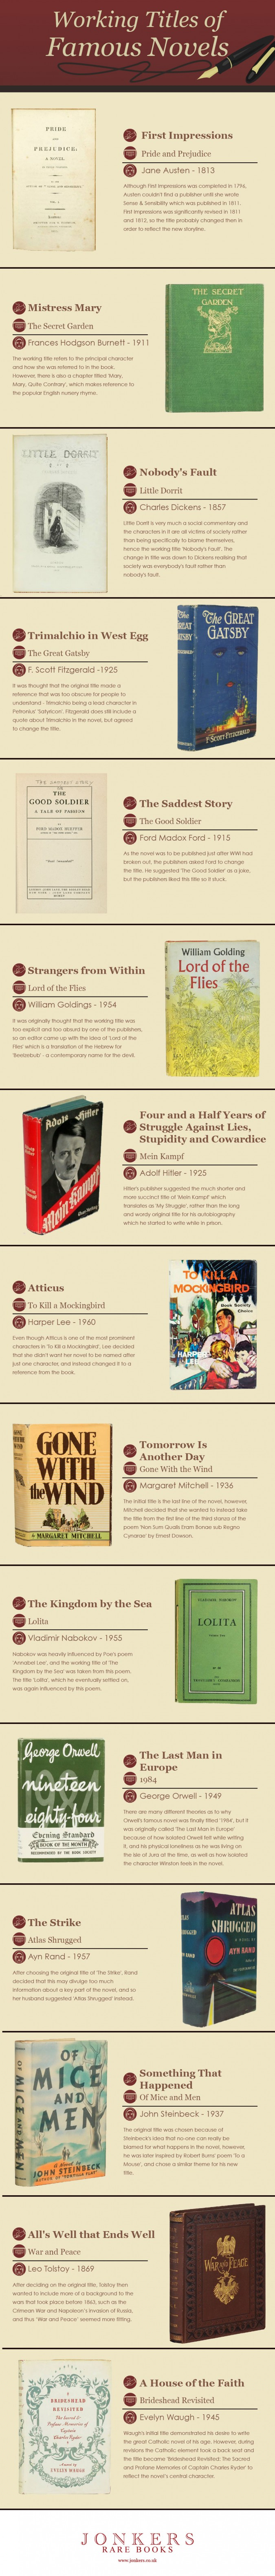 Working Titles Of Famous Novels